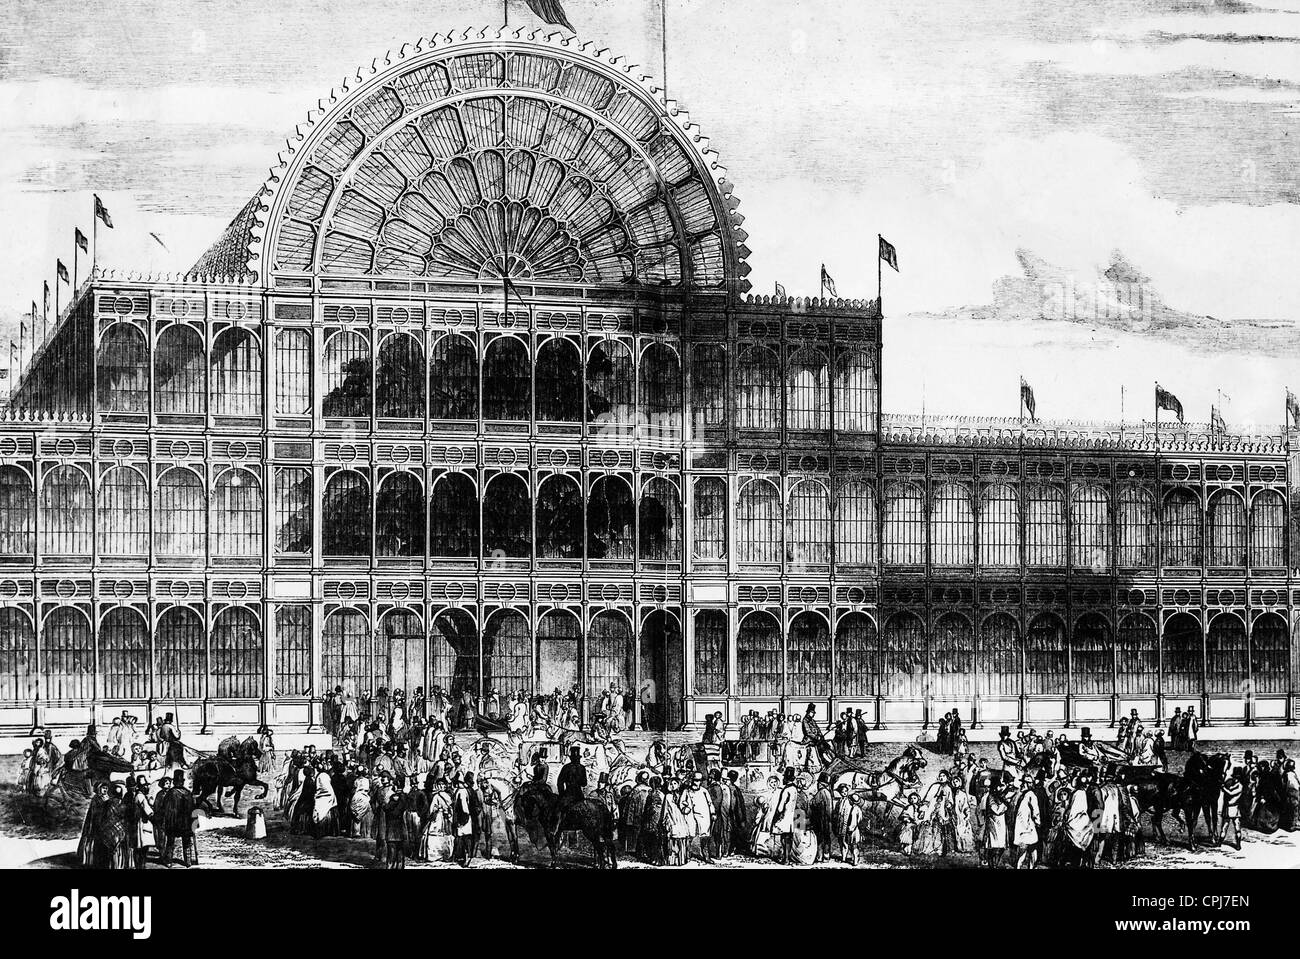 contemporary illustration of the crystal palace in london